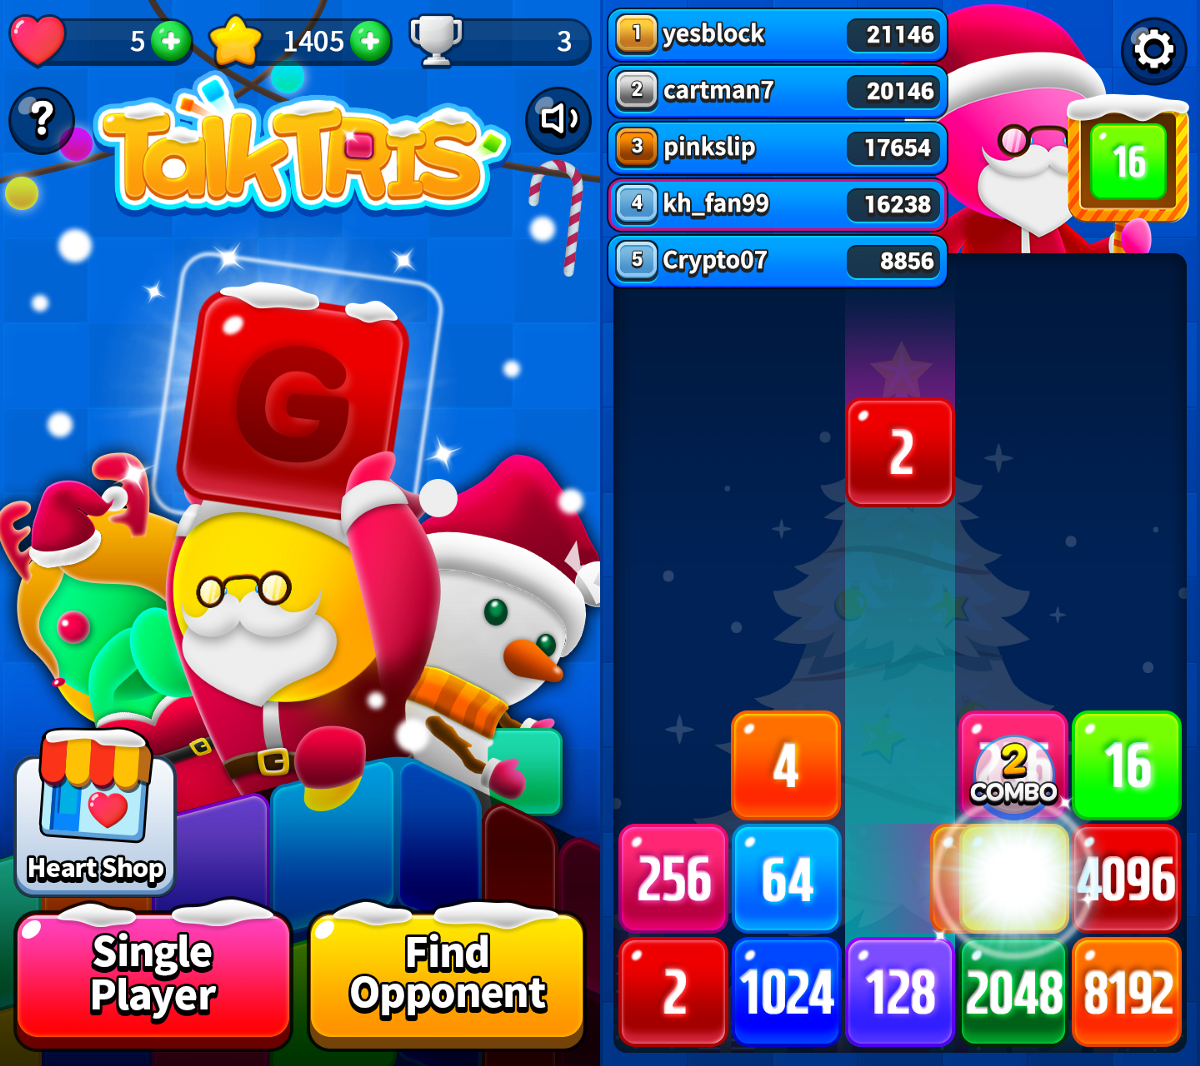 Ludena Protocol Releases New Multiplayer Rewards-Based Game, Talk!Tris!